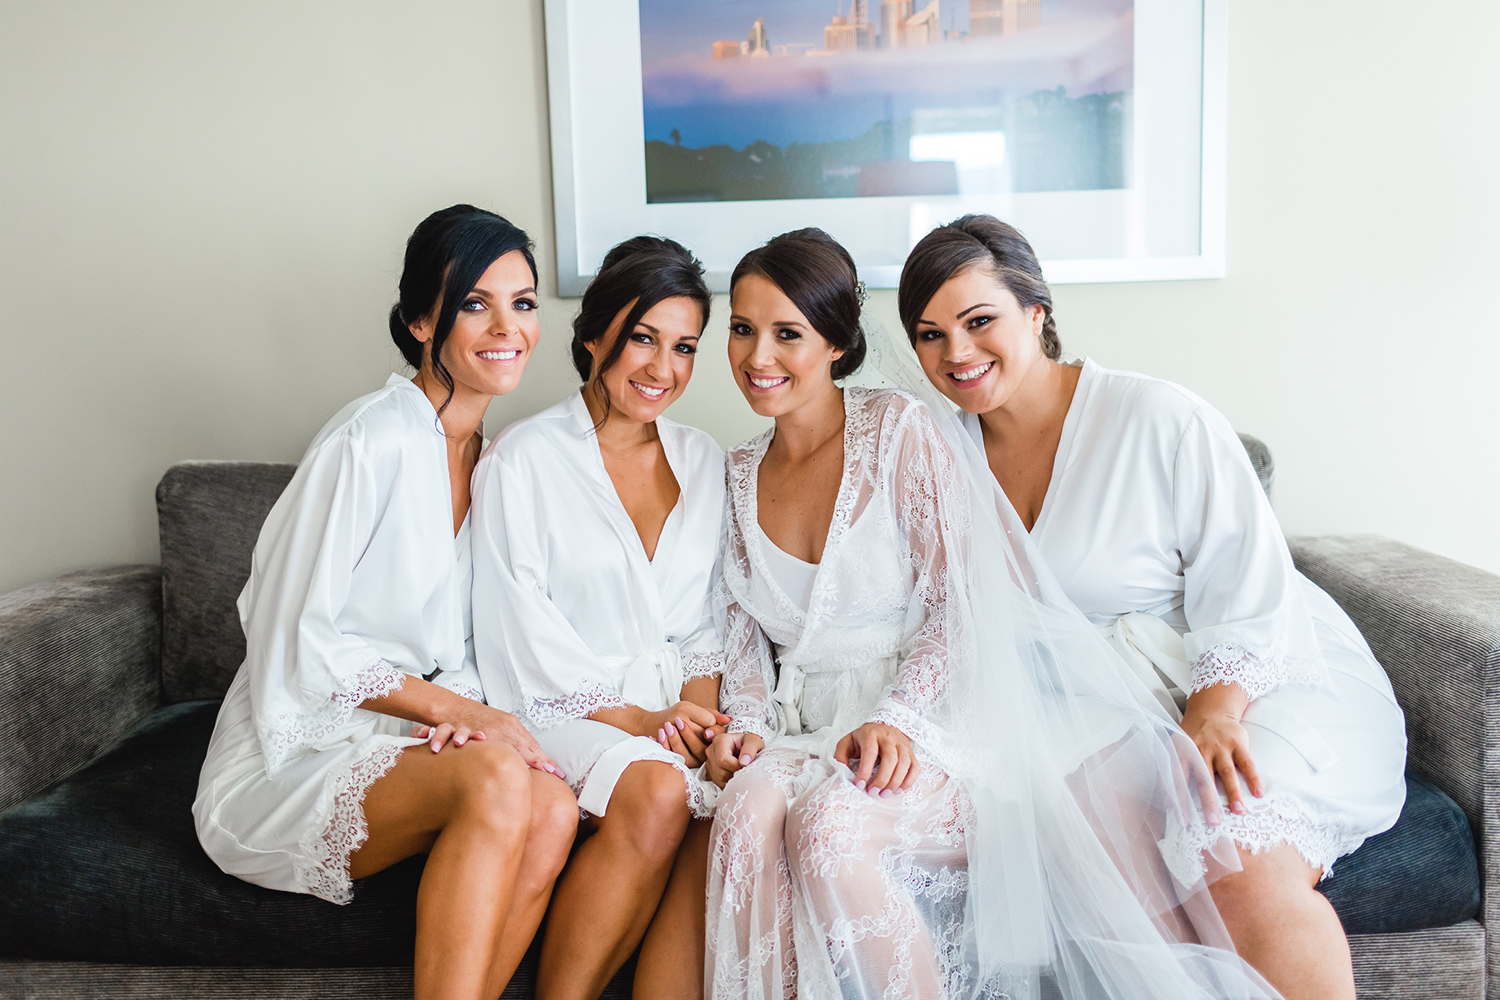 White Silk Robes with Lace Trim